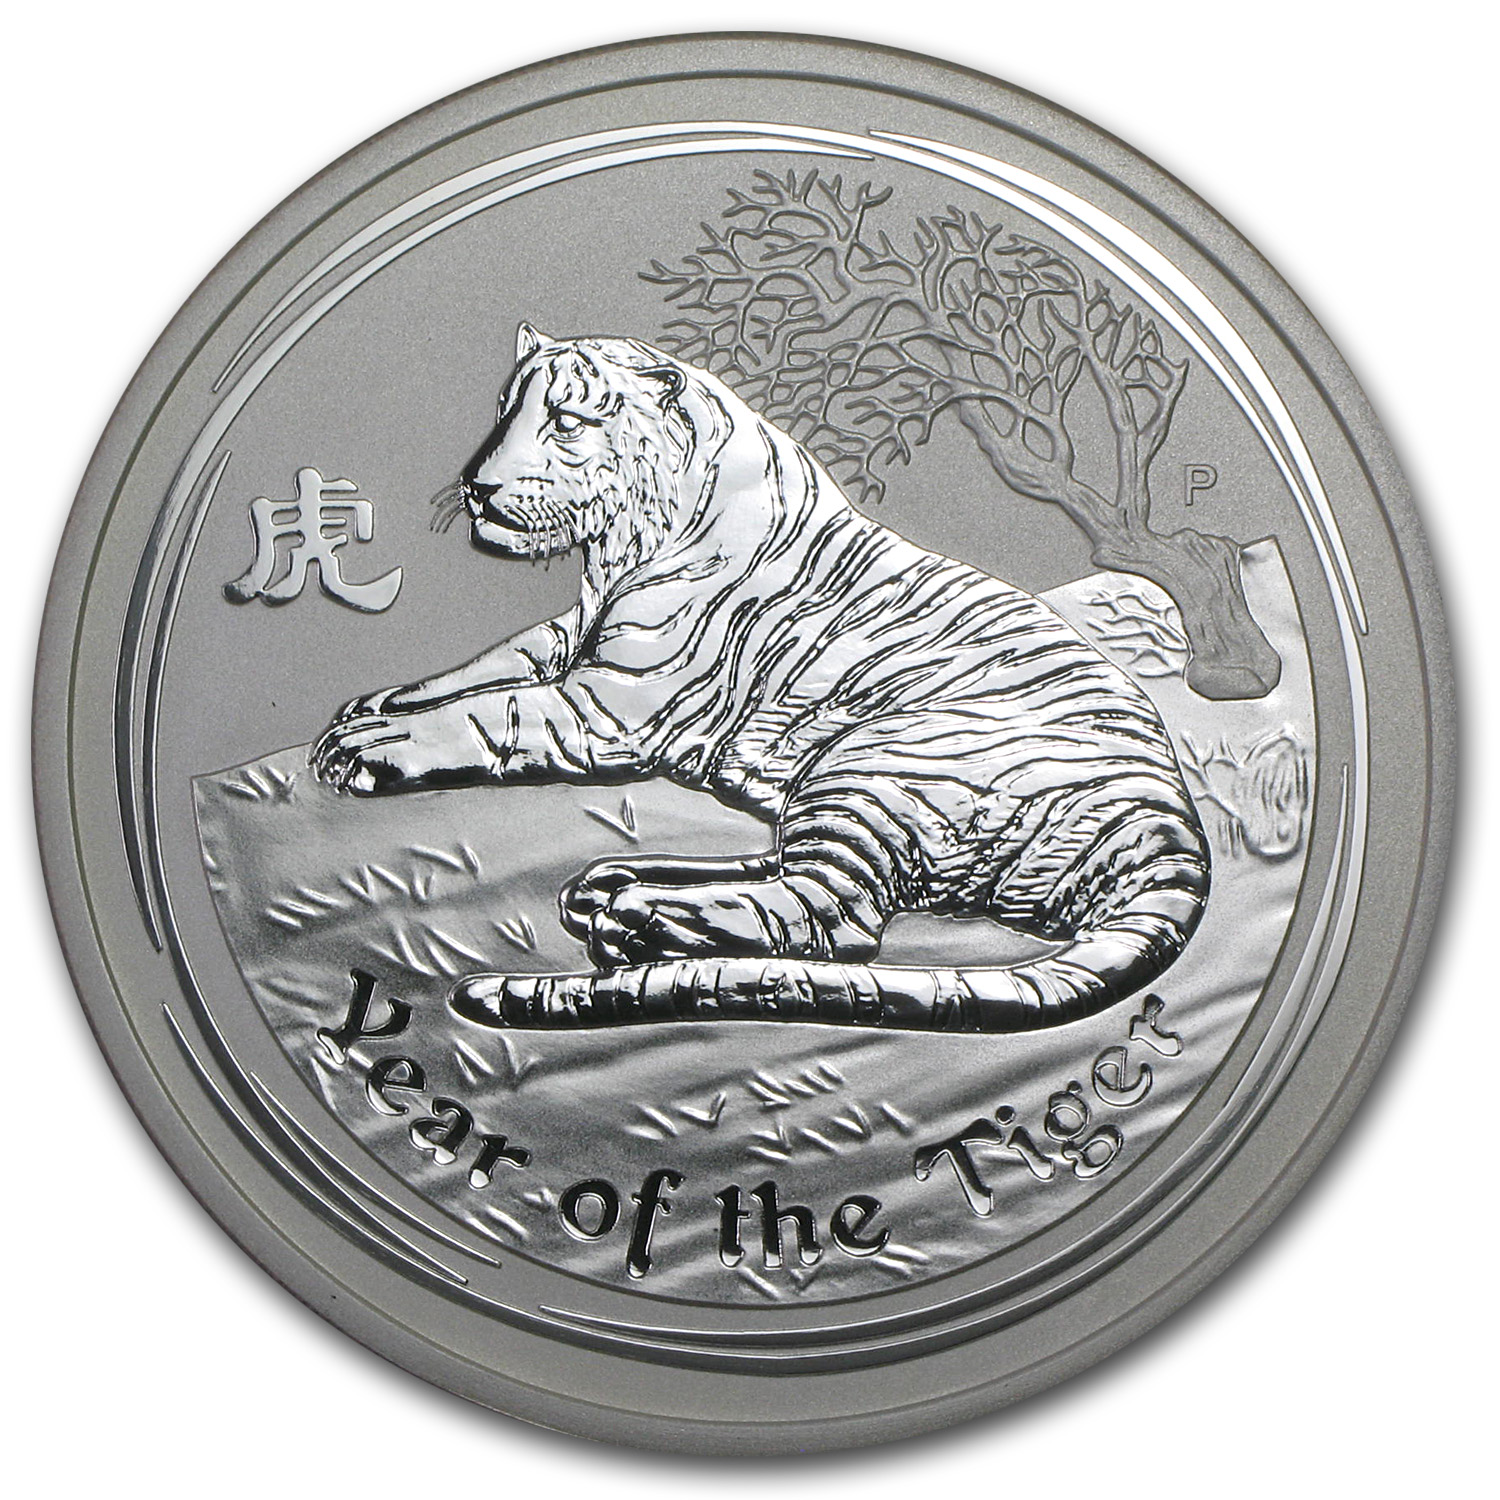 2010 5 oz Silver Australian Year of the Tiger Coin (SII) (Spots)